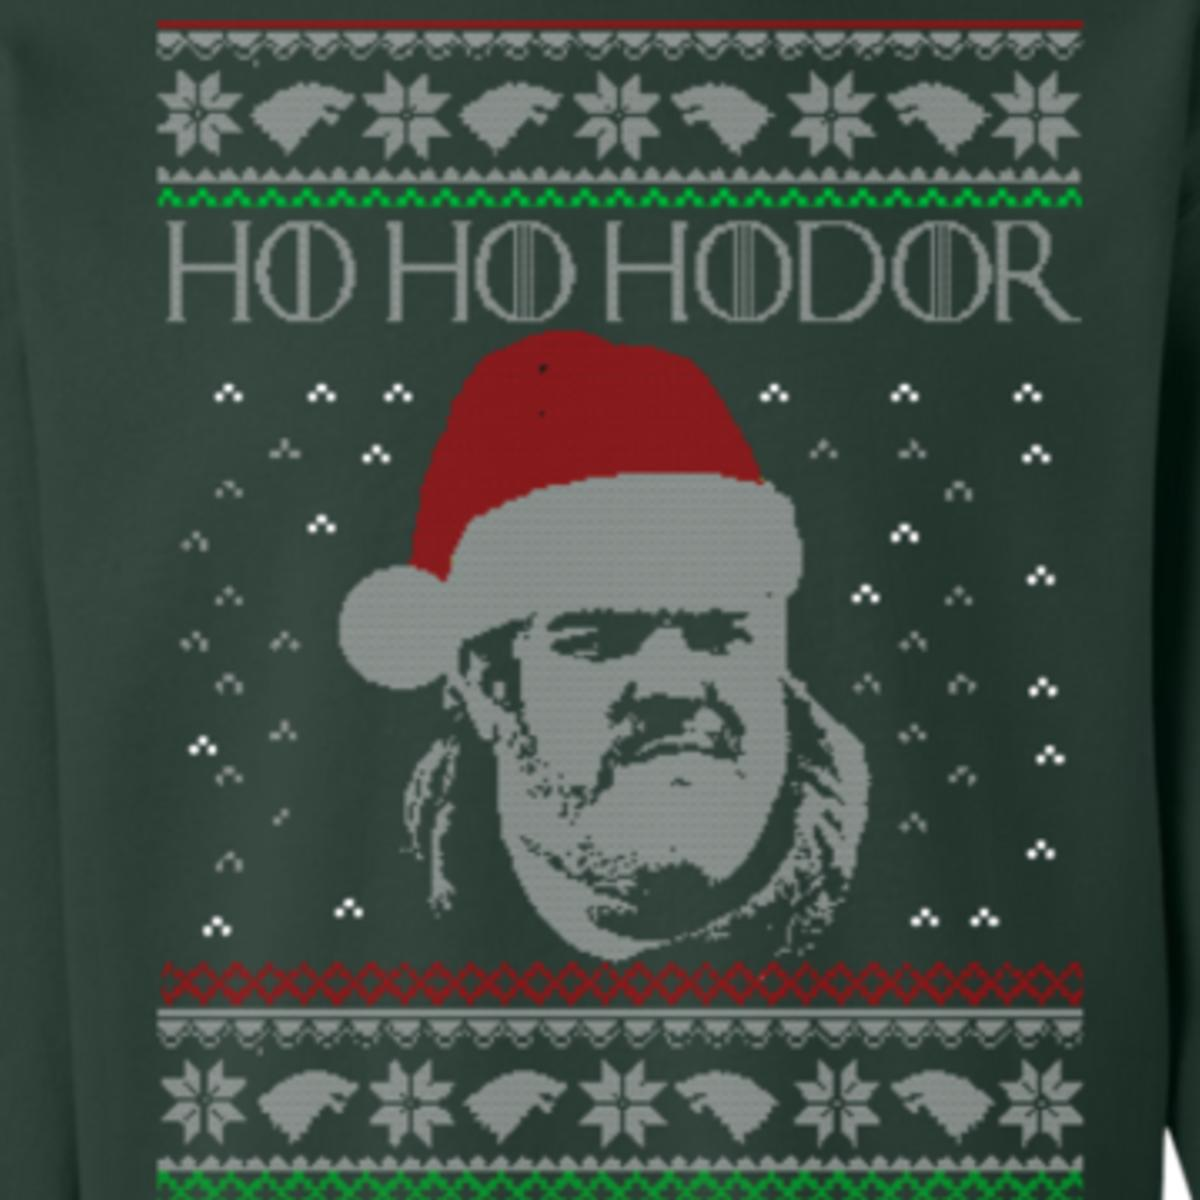 18 geeky holiday sweaters to snuggle up to this joyous season ...